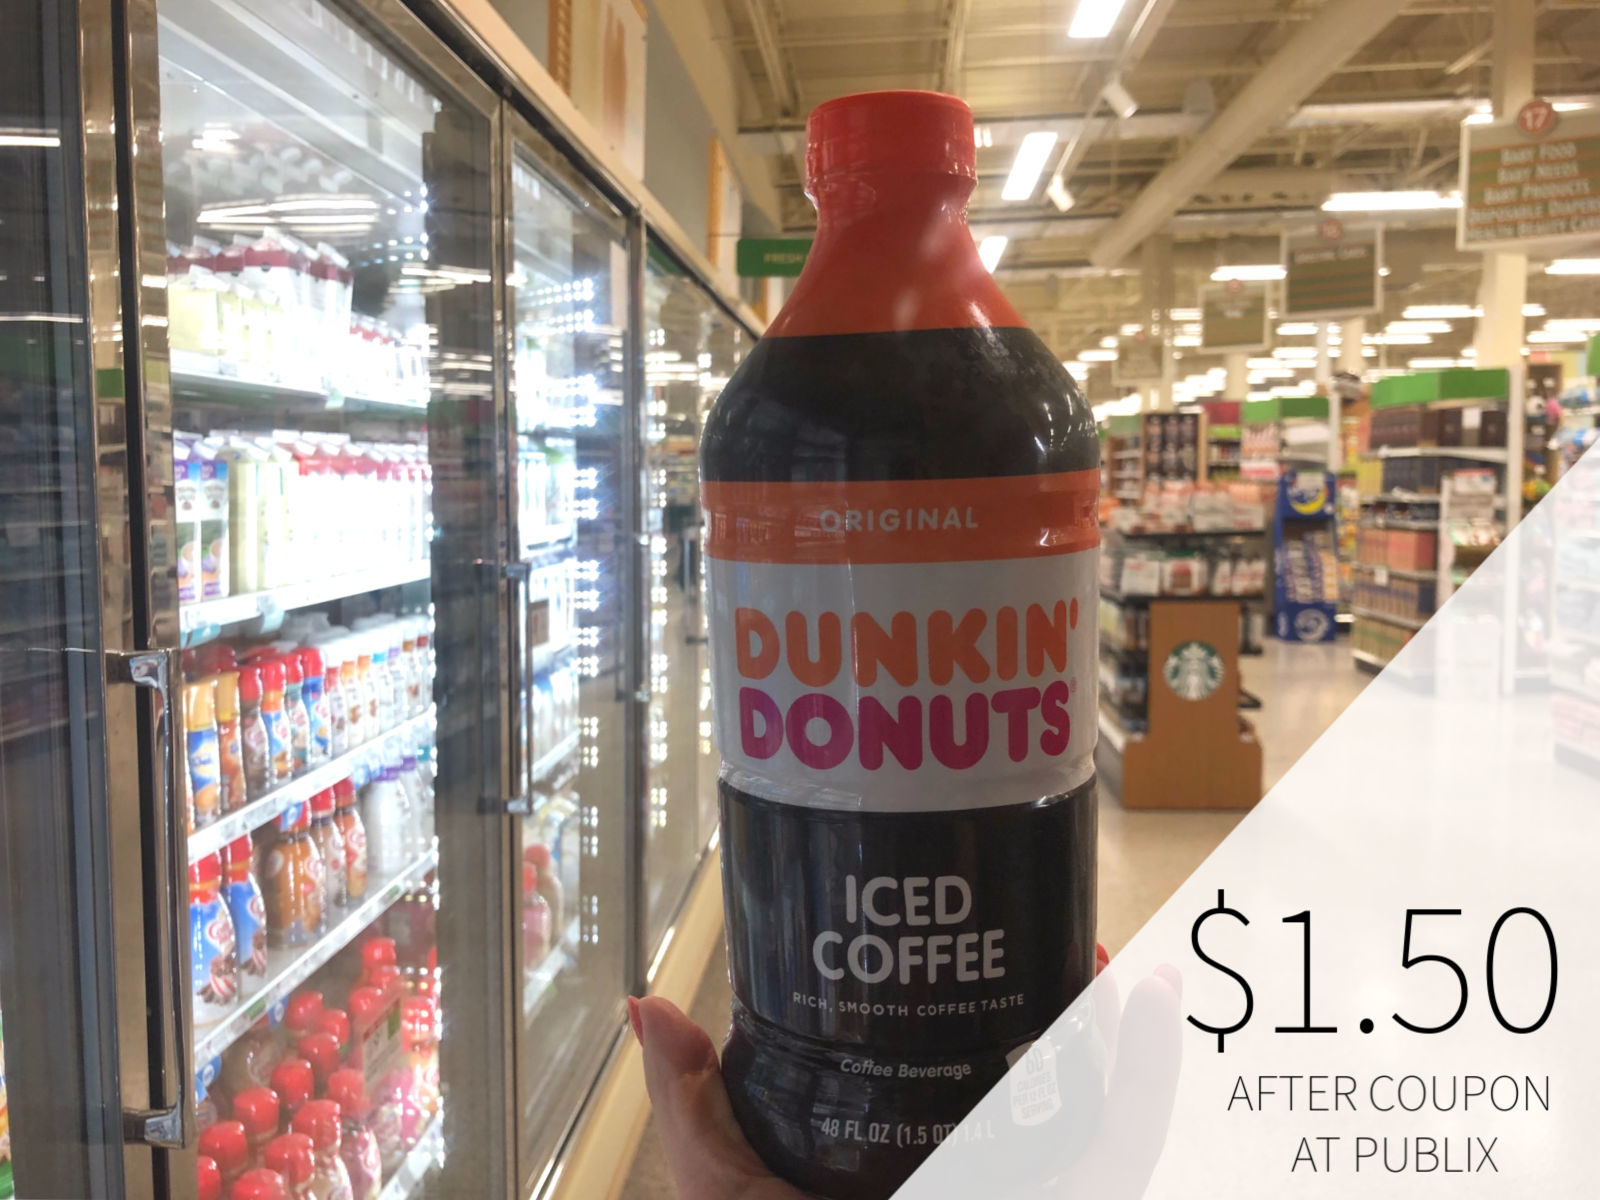 Dunkin Donuts Iced Coffee Big Bottle Just 1 50 At Publix